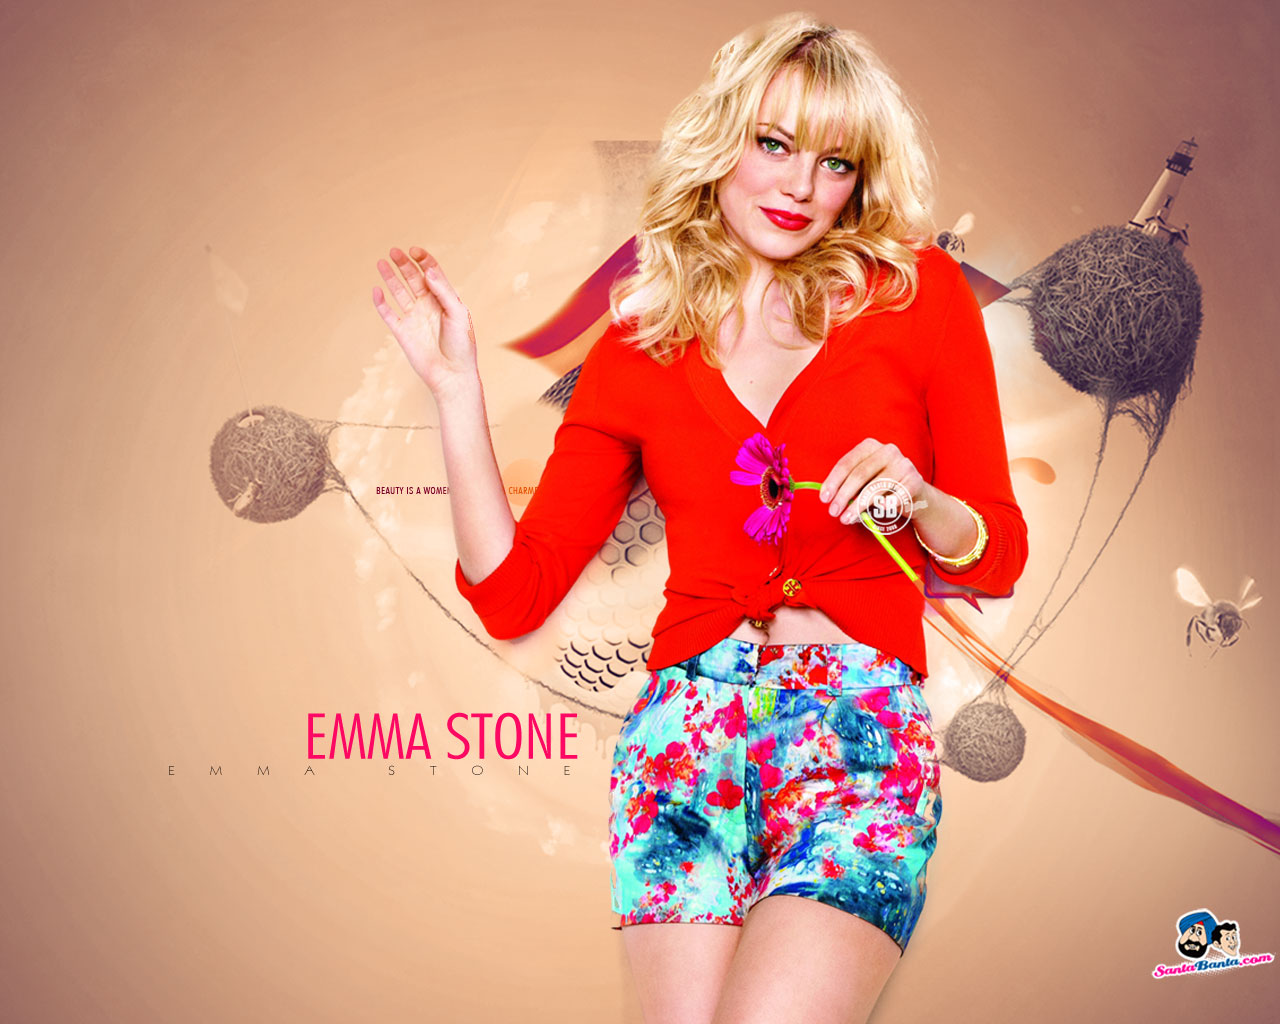 Google 3d Wallpapers Free Download Emma Stone Hd Wallpapers Most Beautiful Places In The